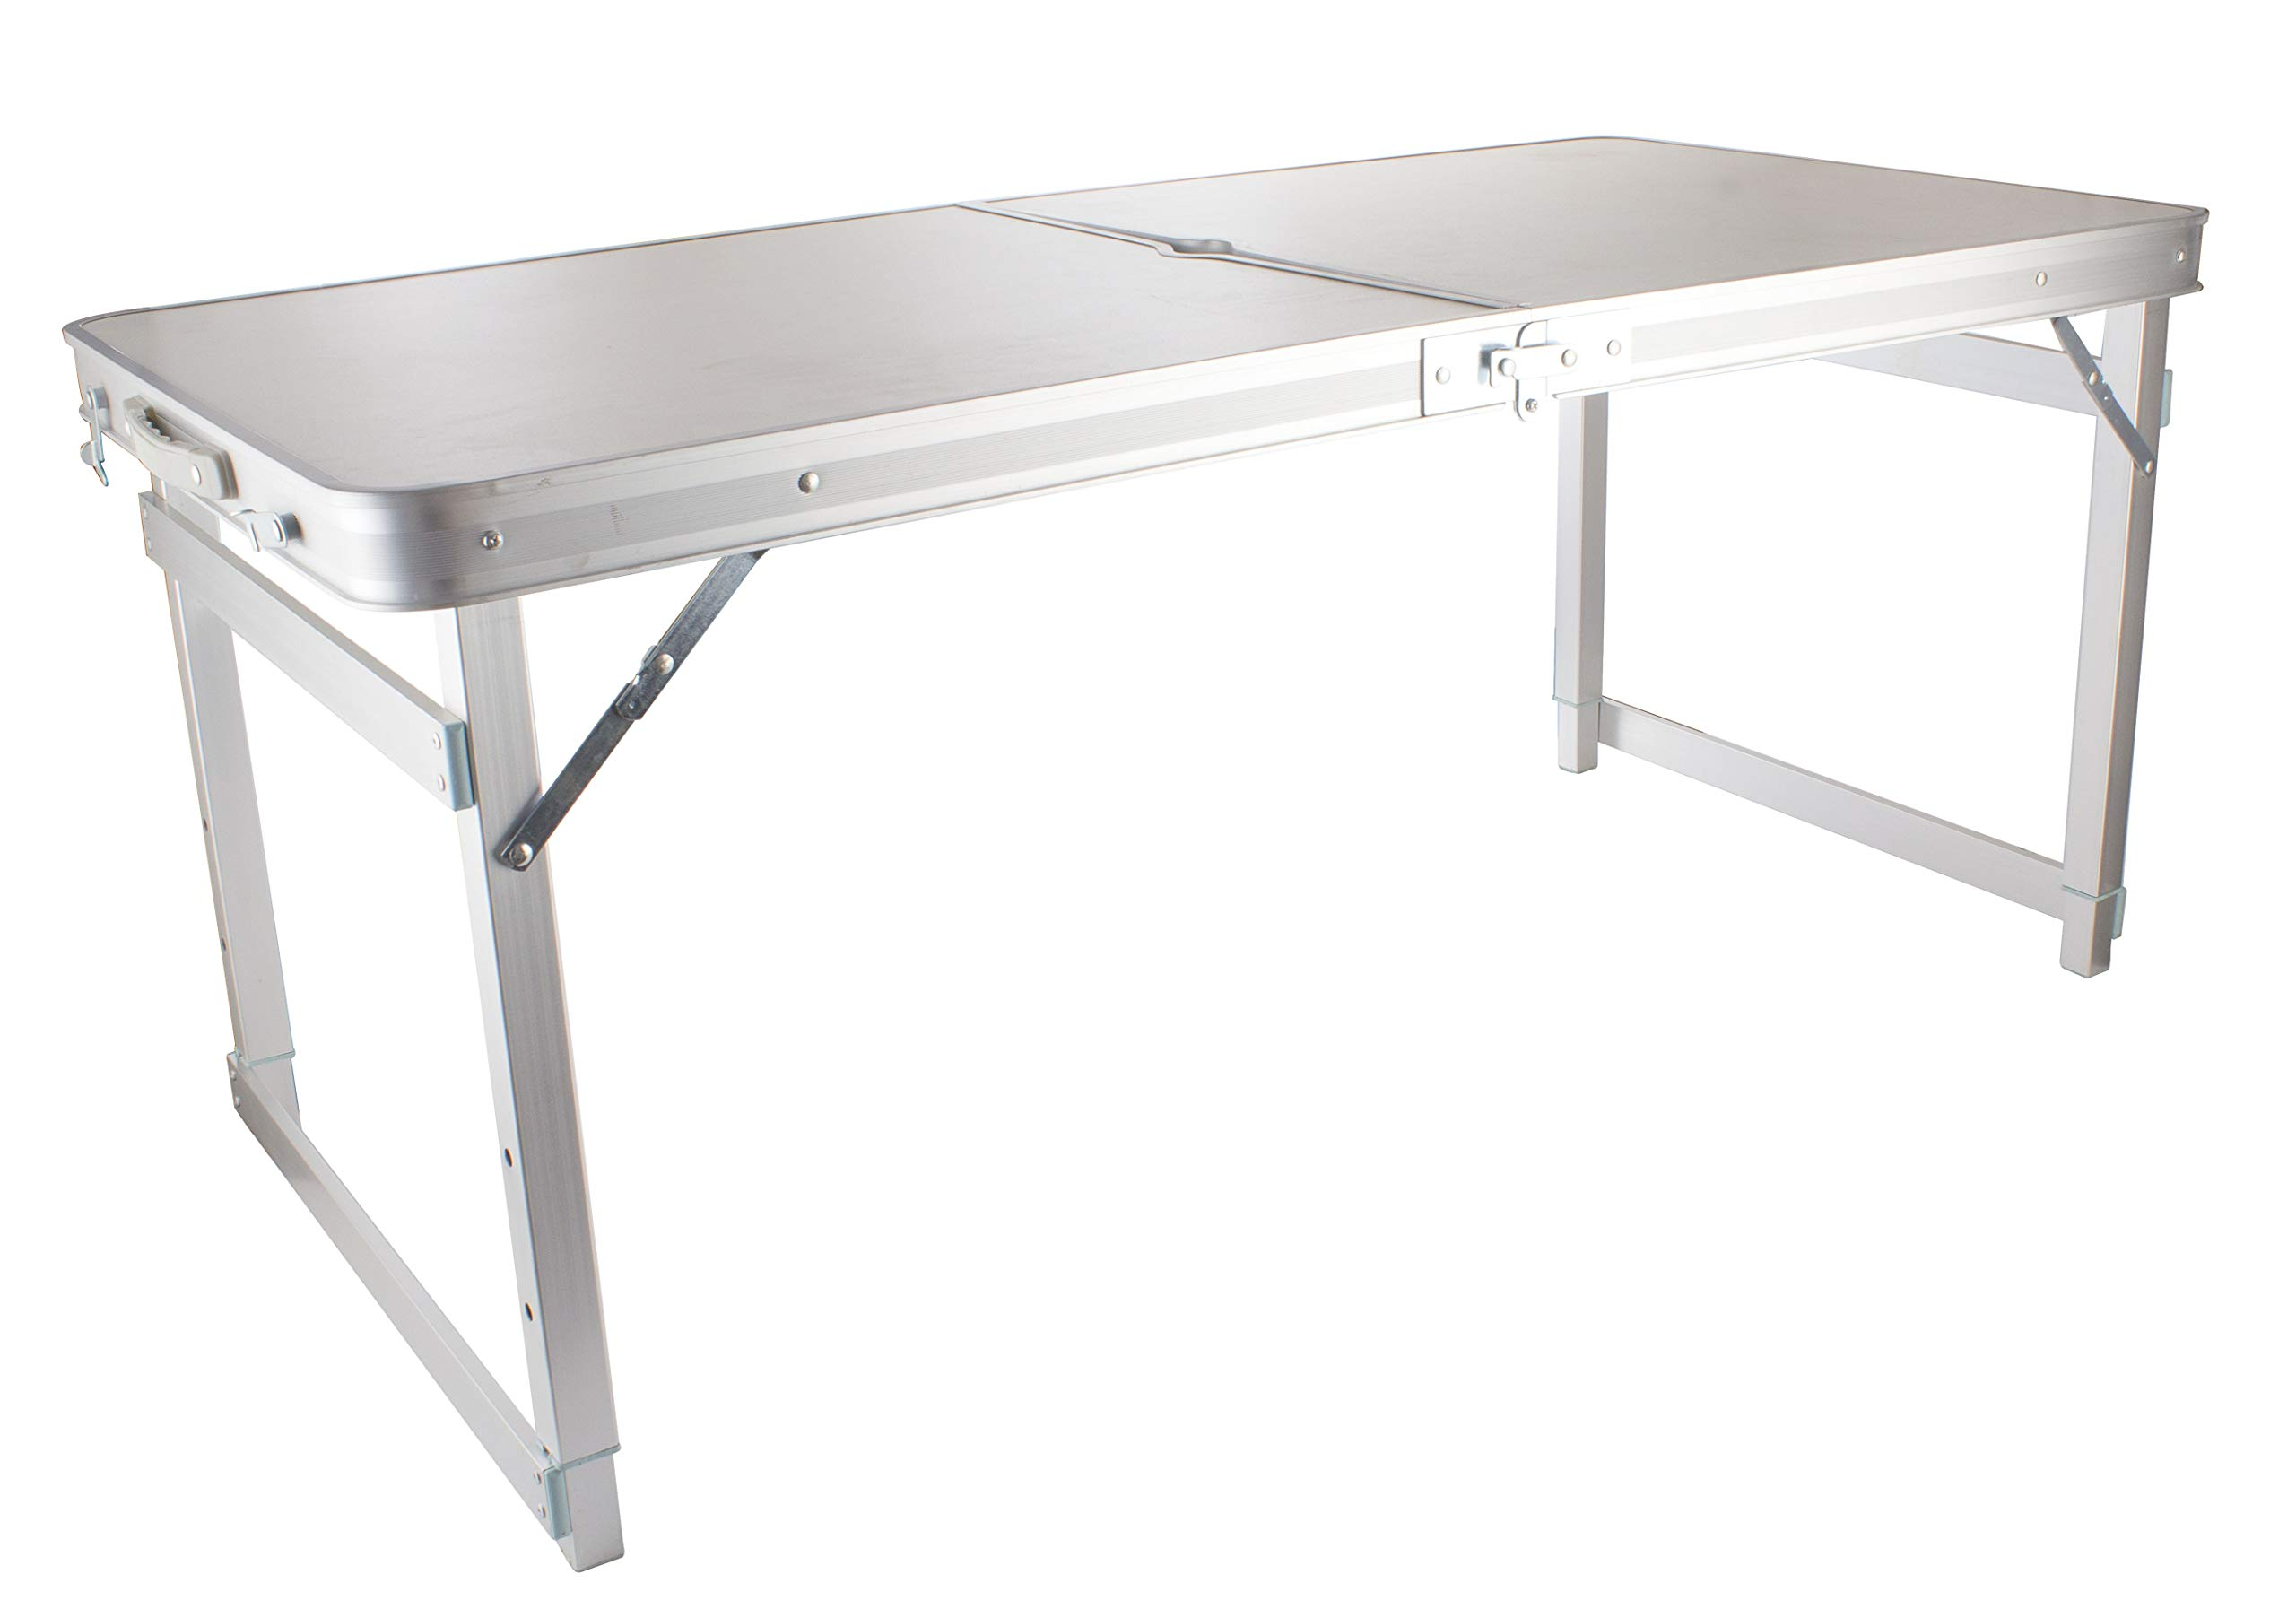 - Expresso 4 Foot Folding Table With Carrying Handle, Portable